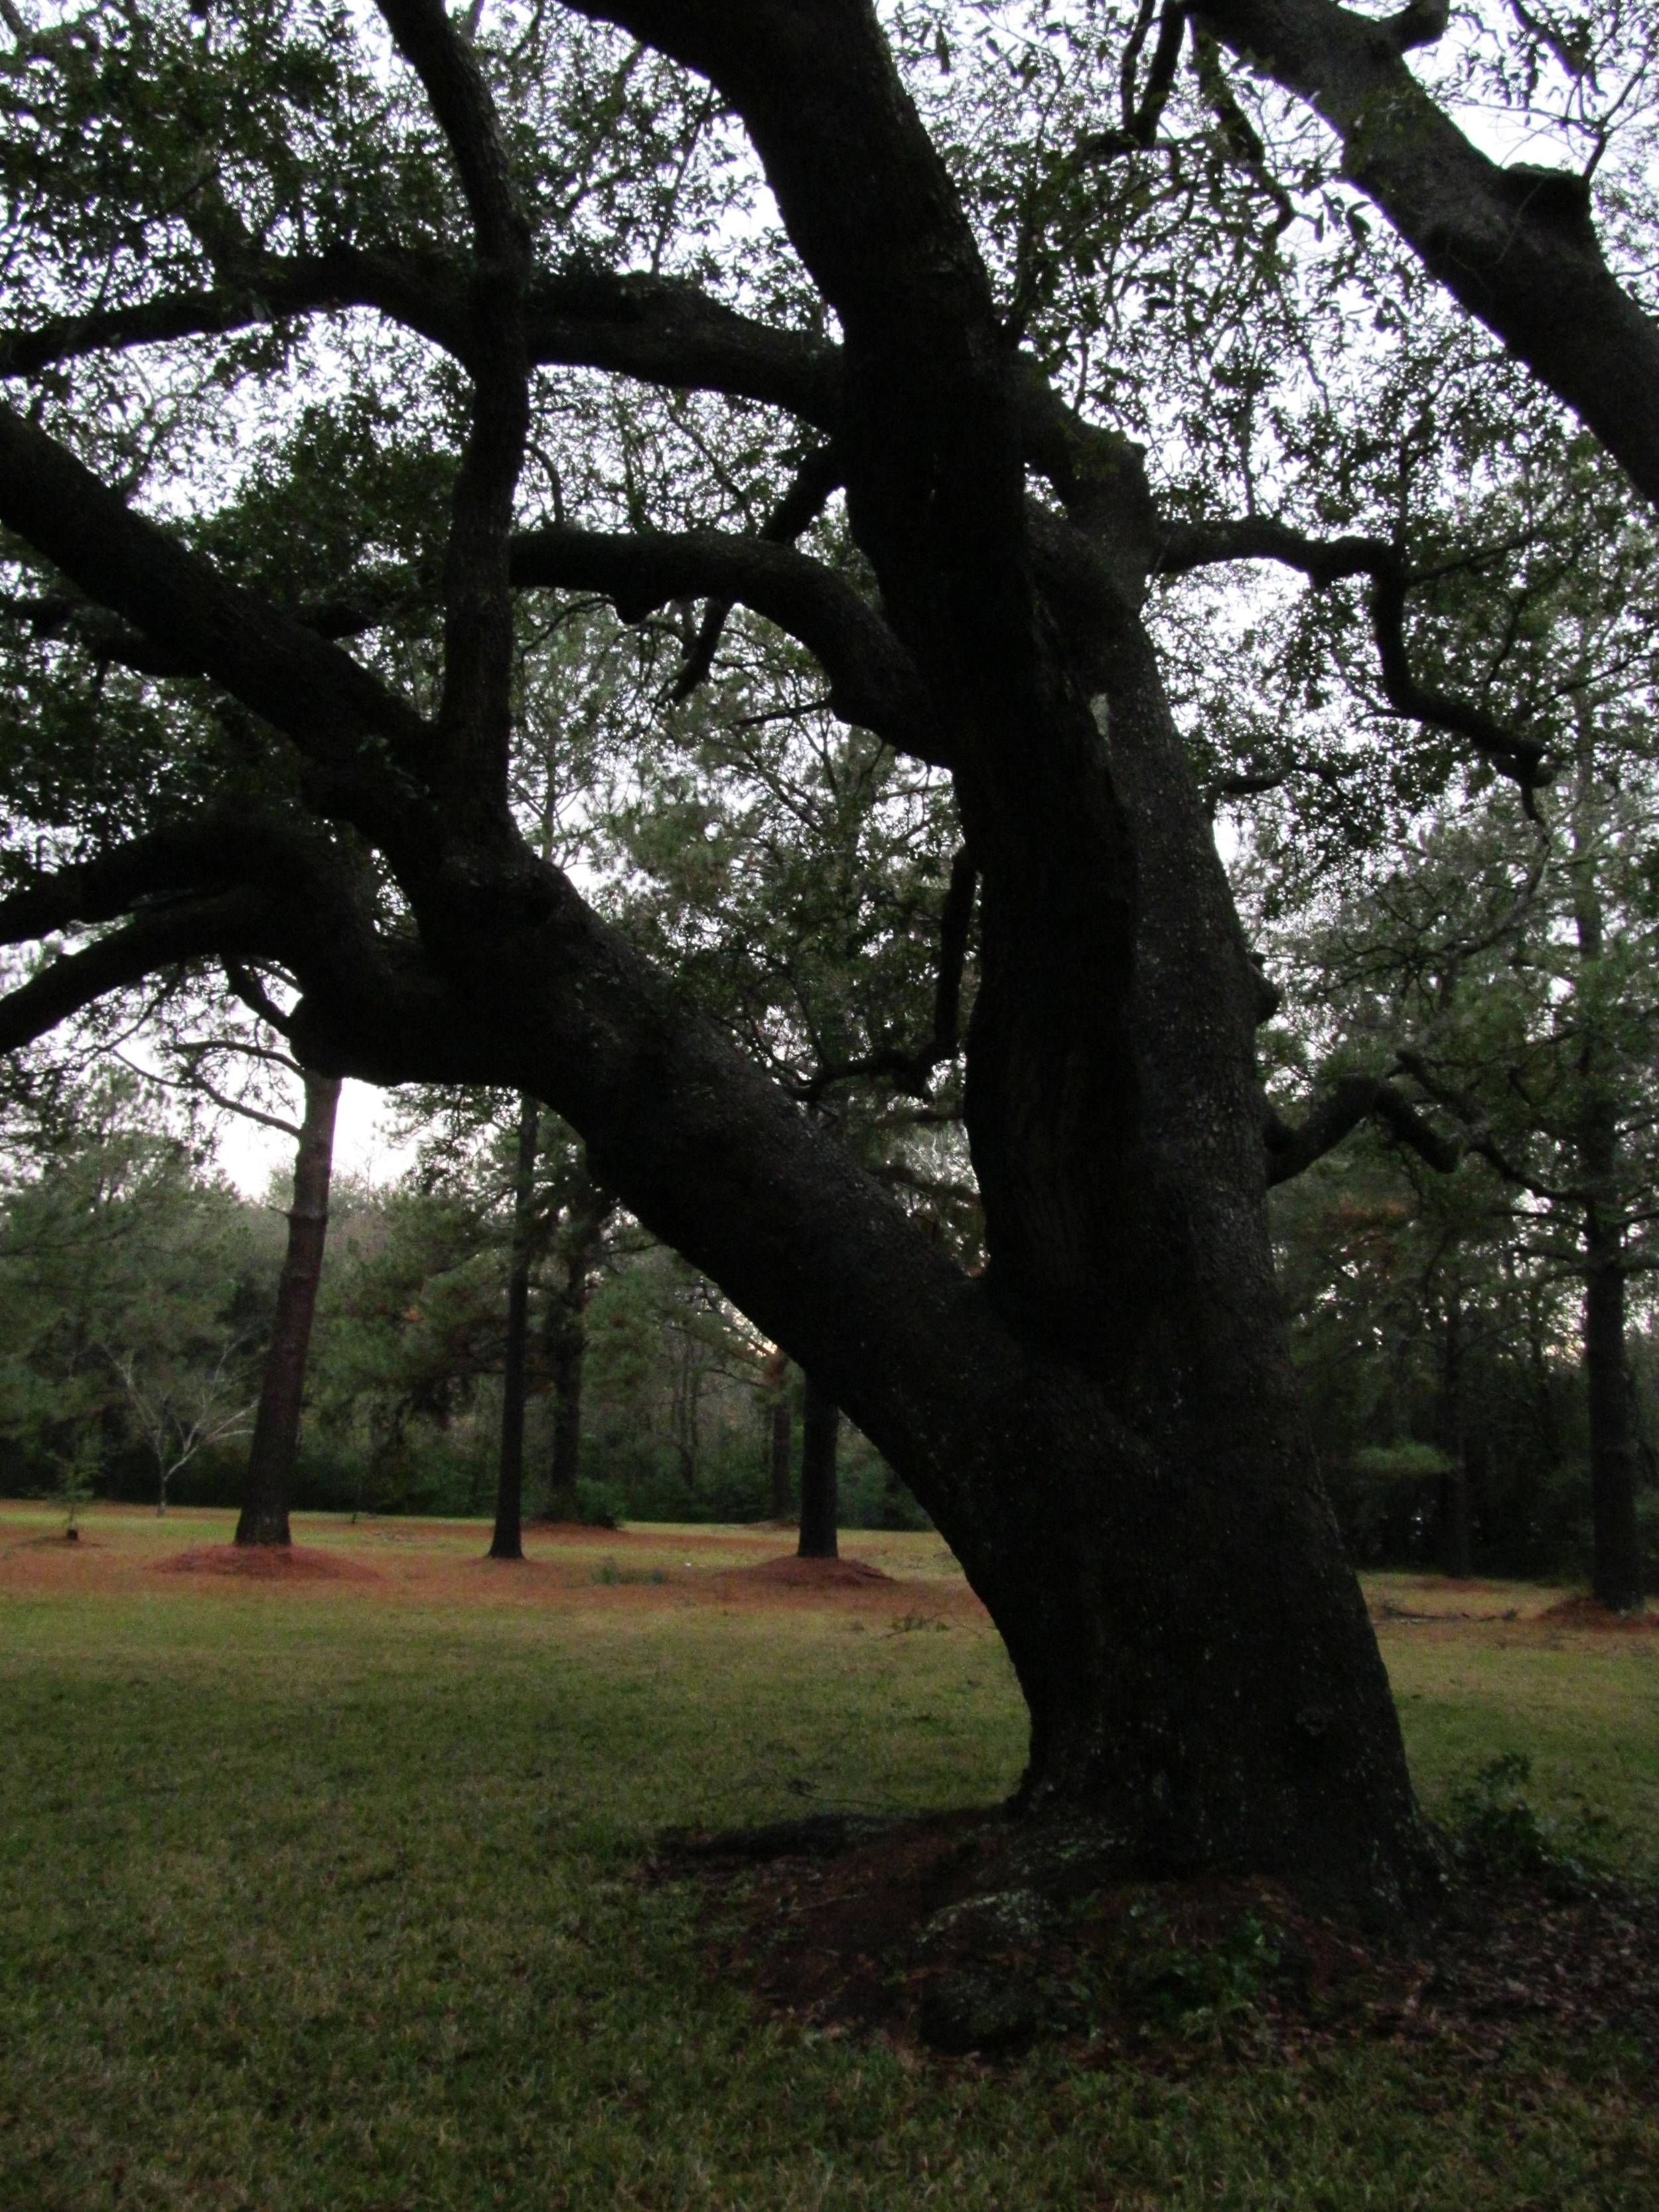 One of the magnificent Oaks we've missed.